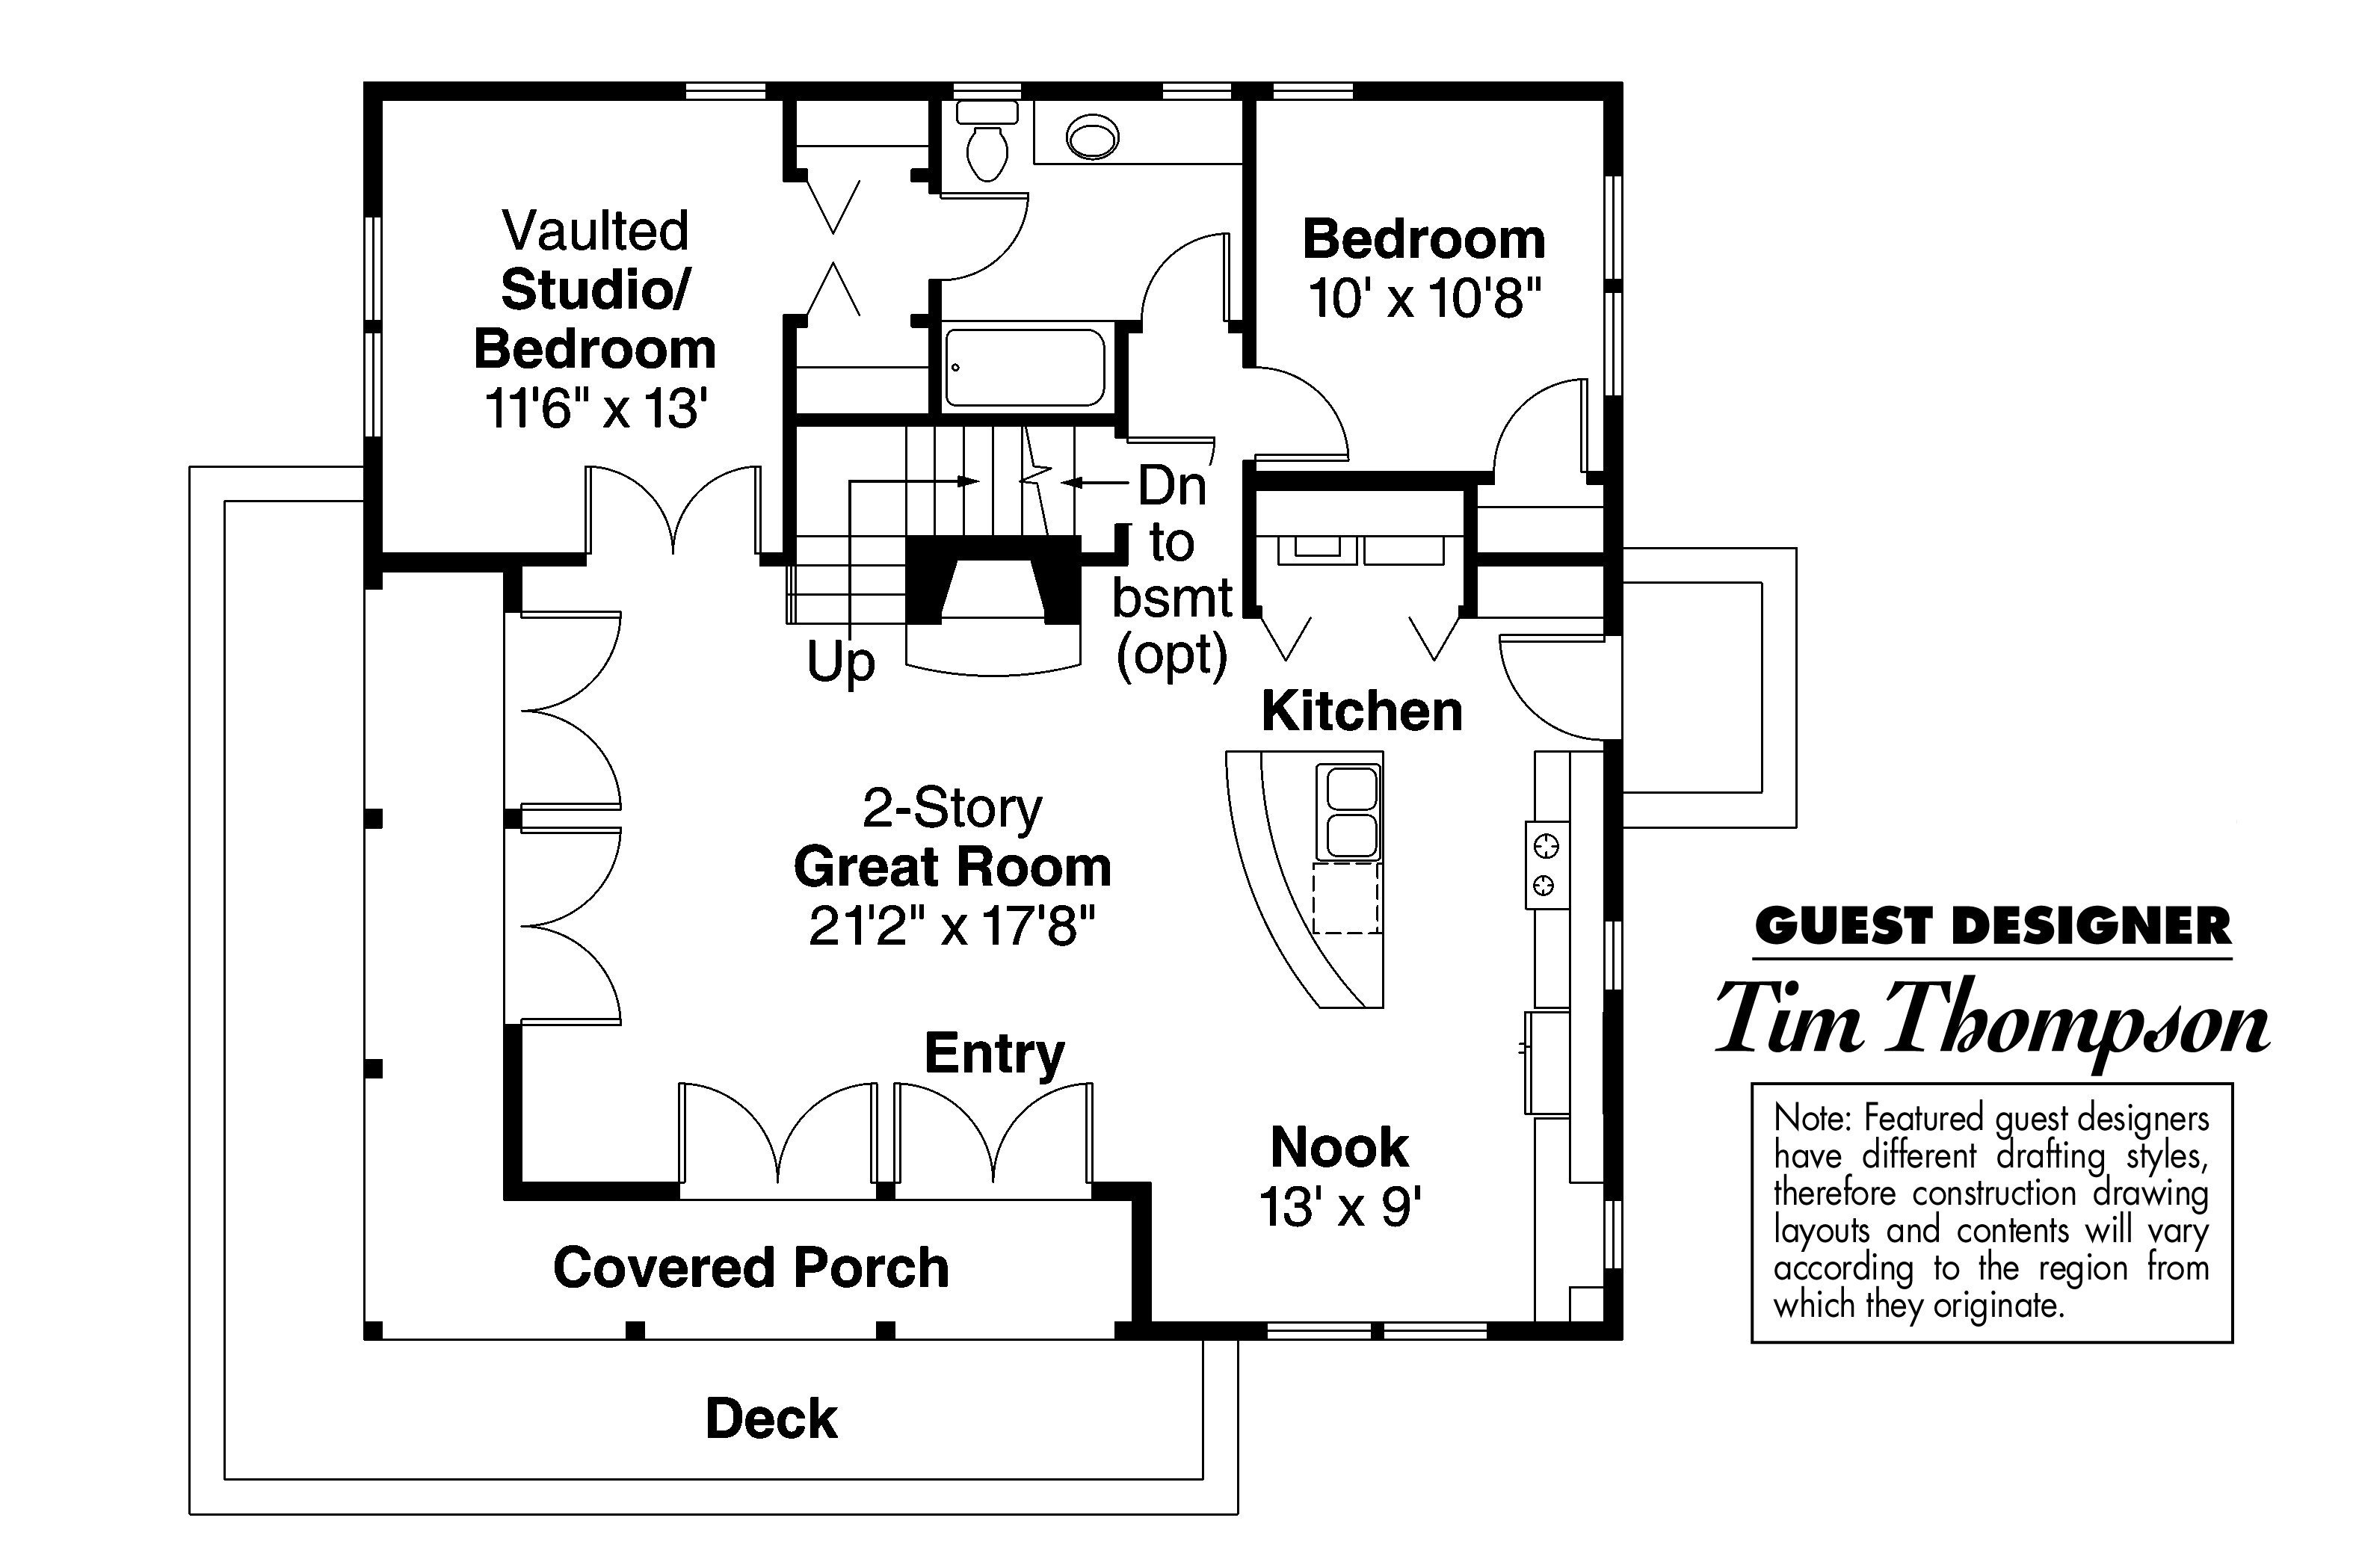 craftsman house plan cedar view 50 012 first floor plan - Craftsman House Plans